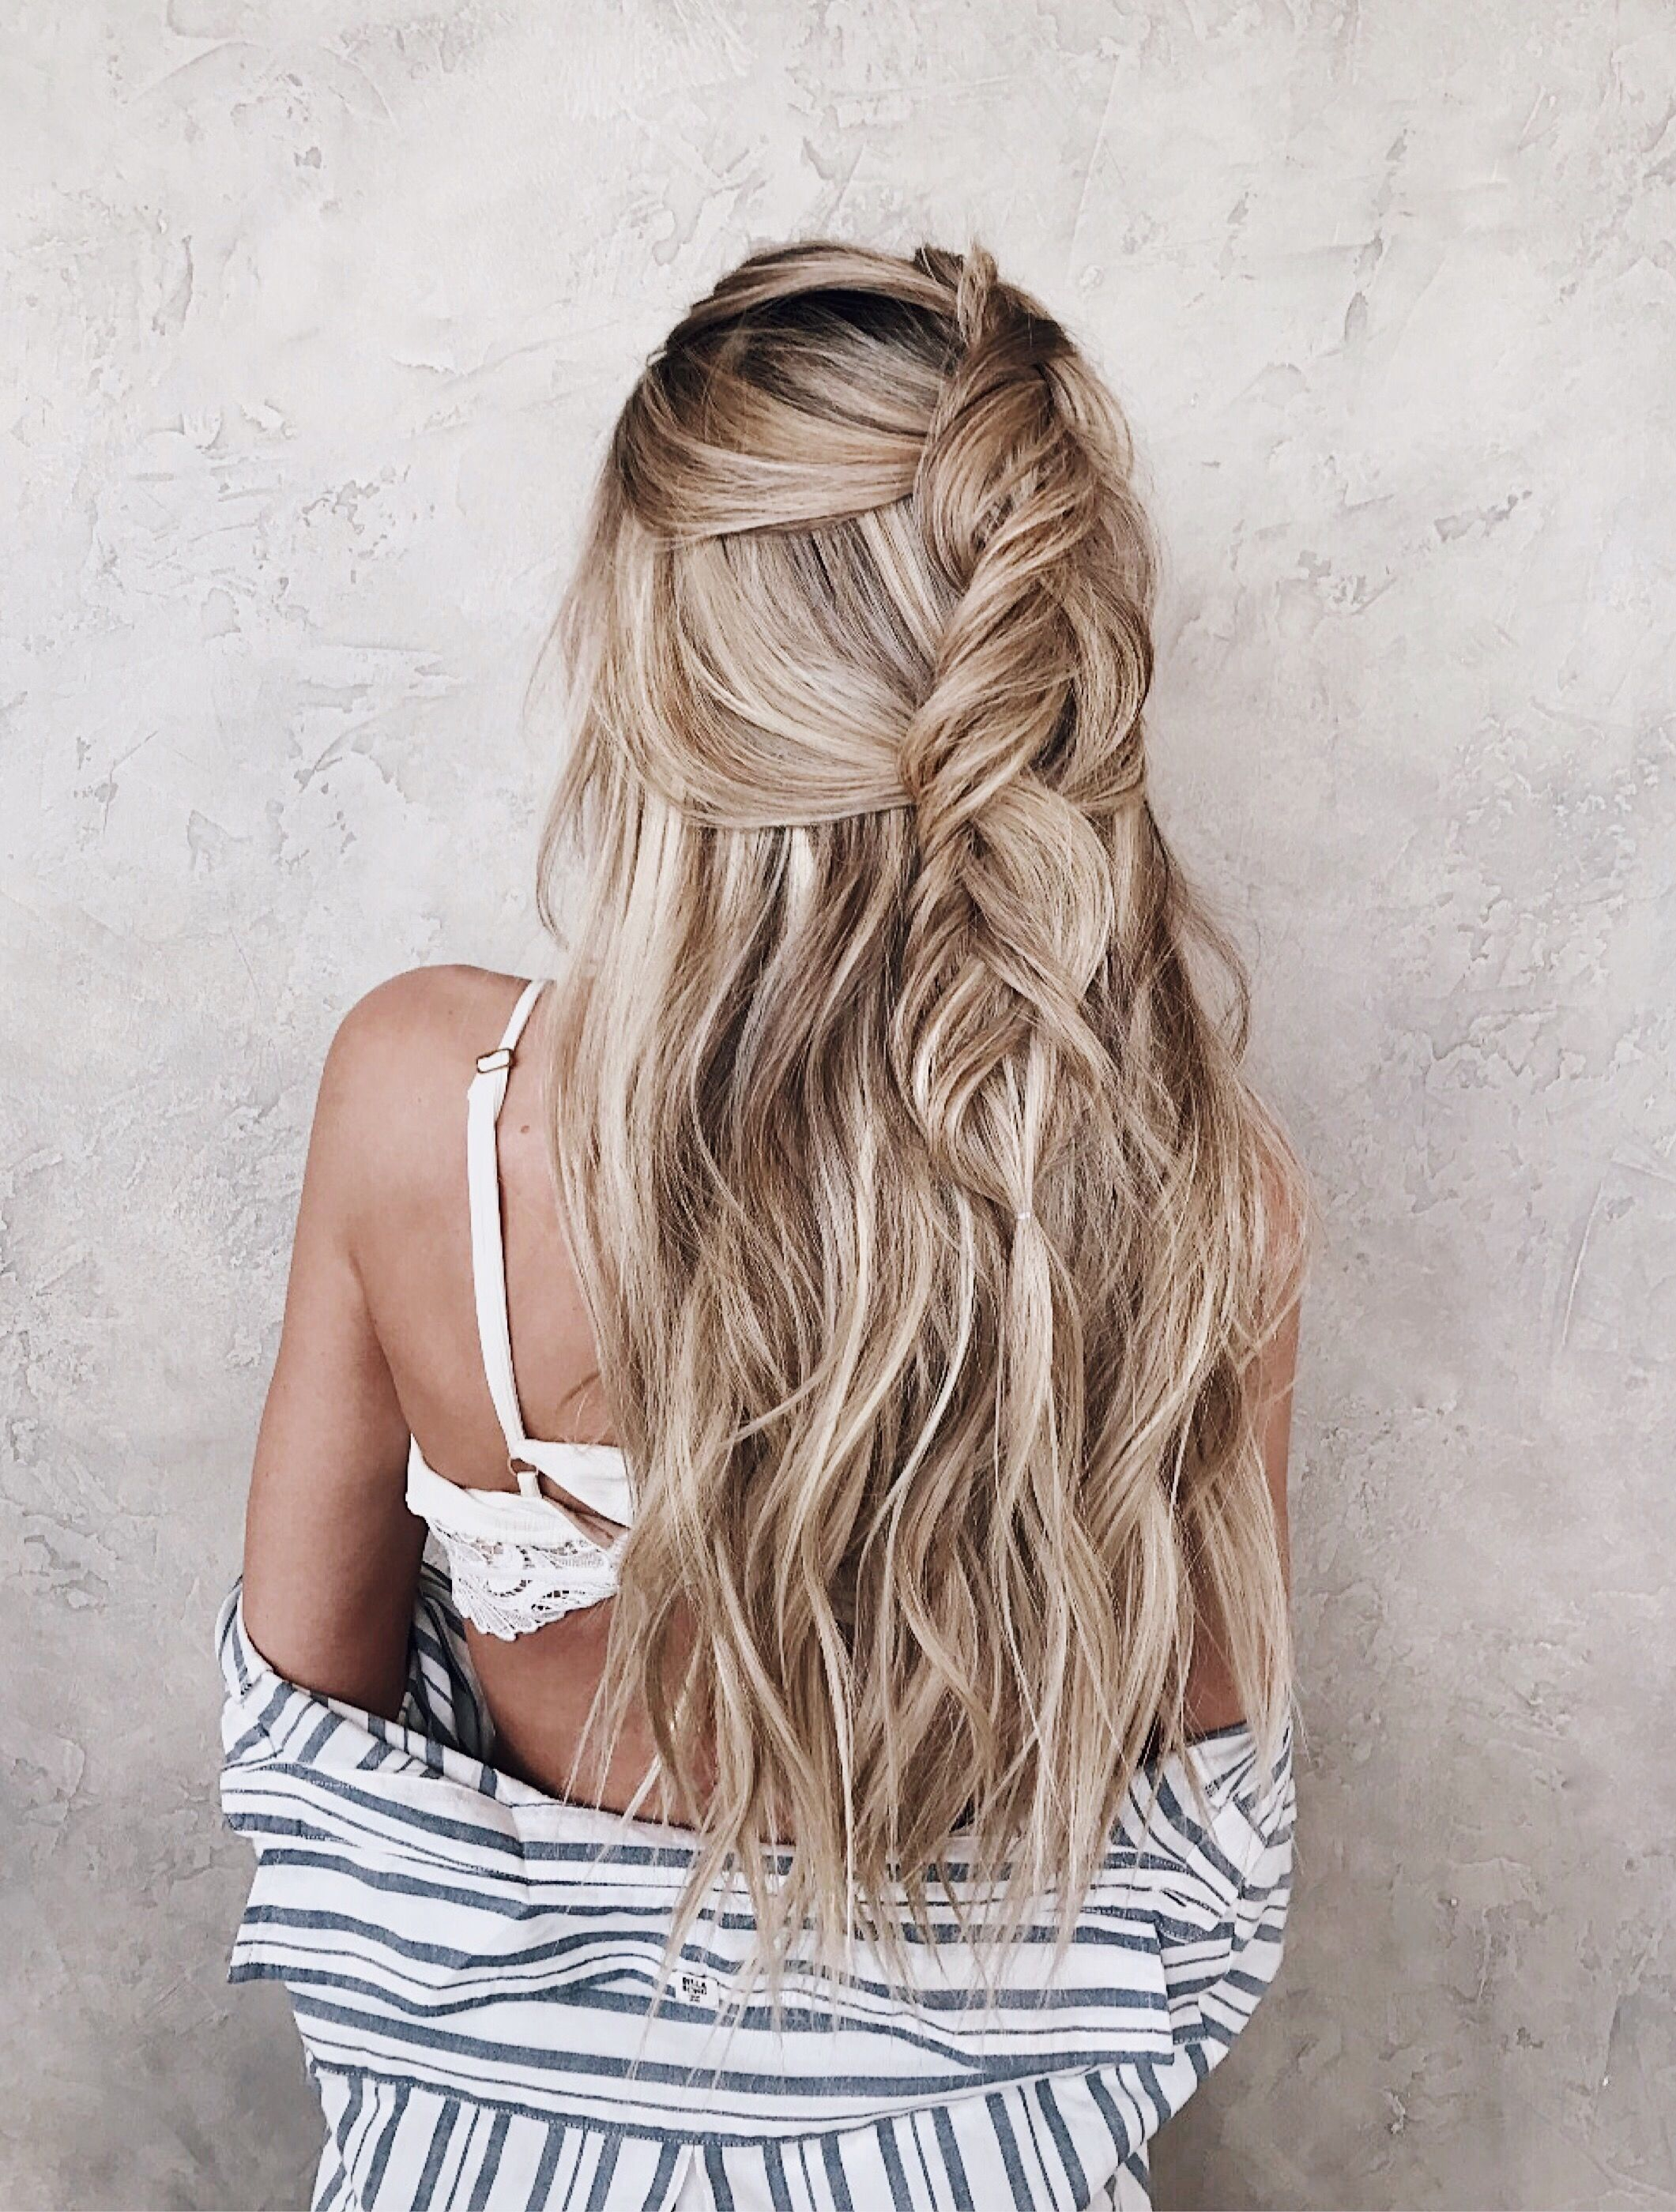 Beach Hairstyles New Loose Blond Braid Half Up Hairstyle Beach Hair Fleurpinterest